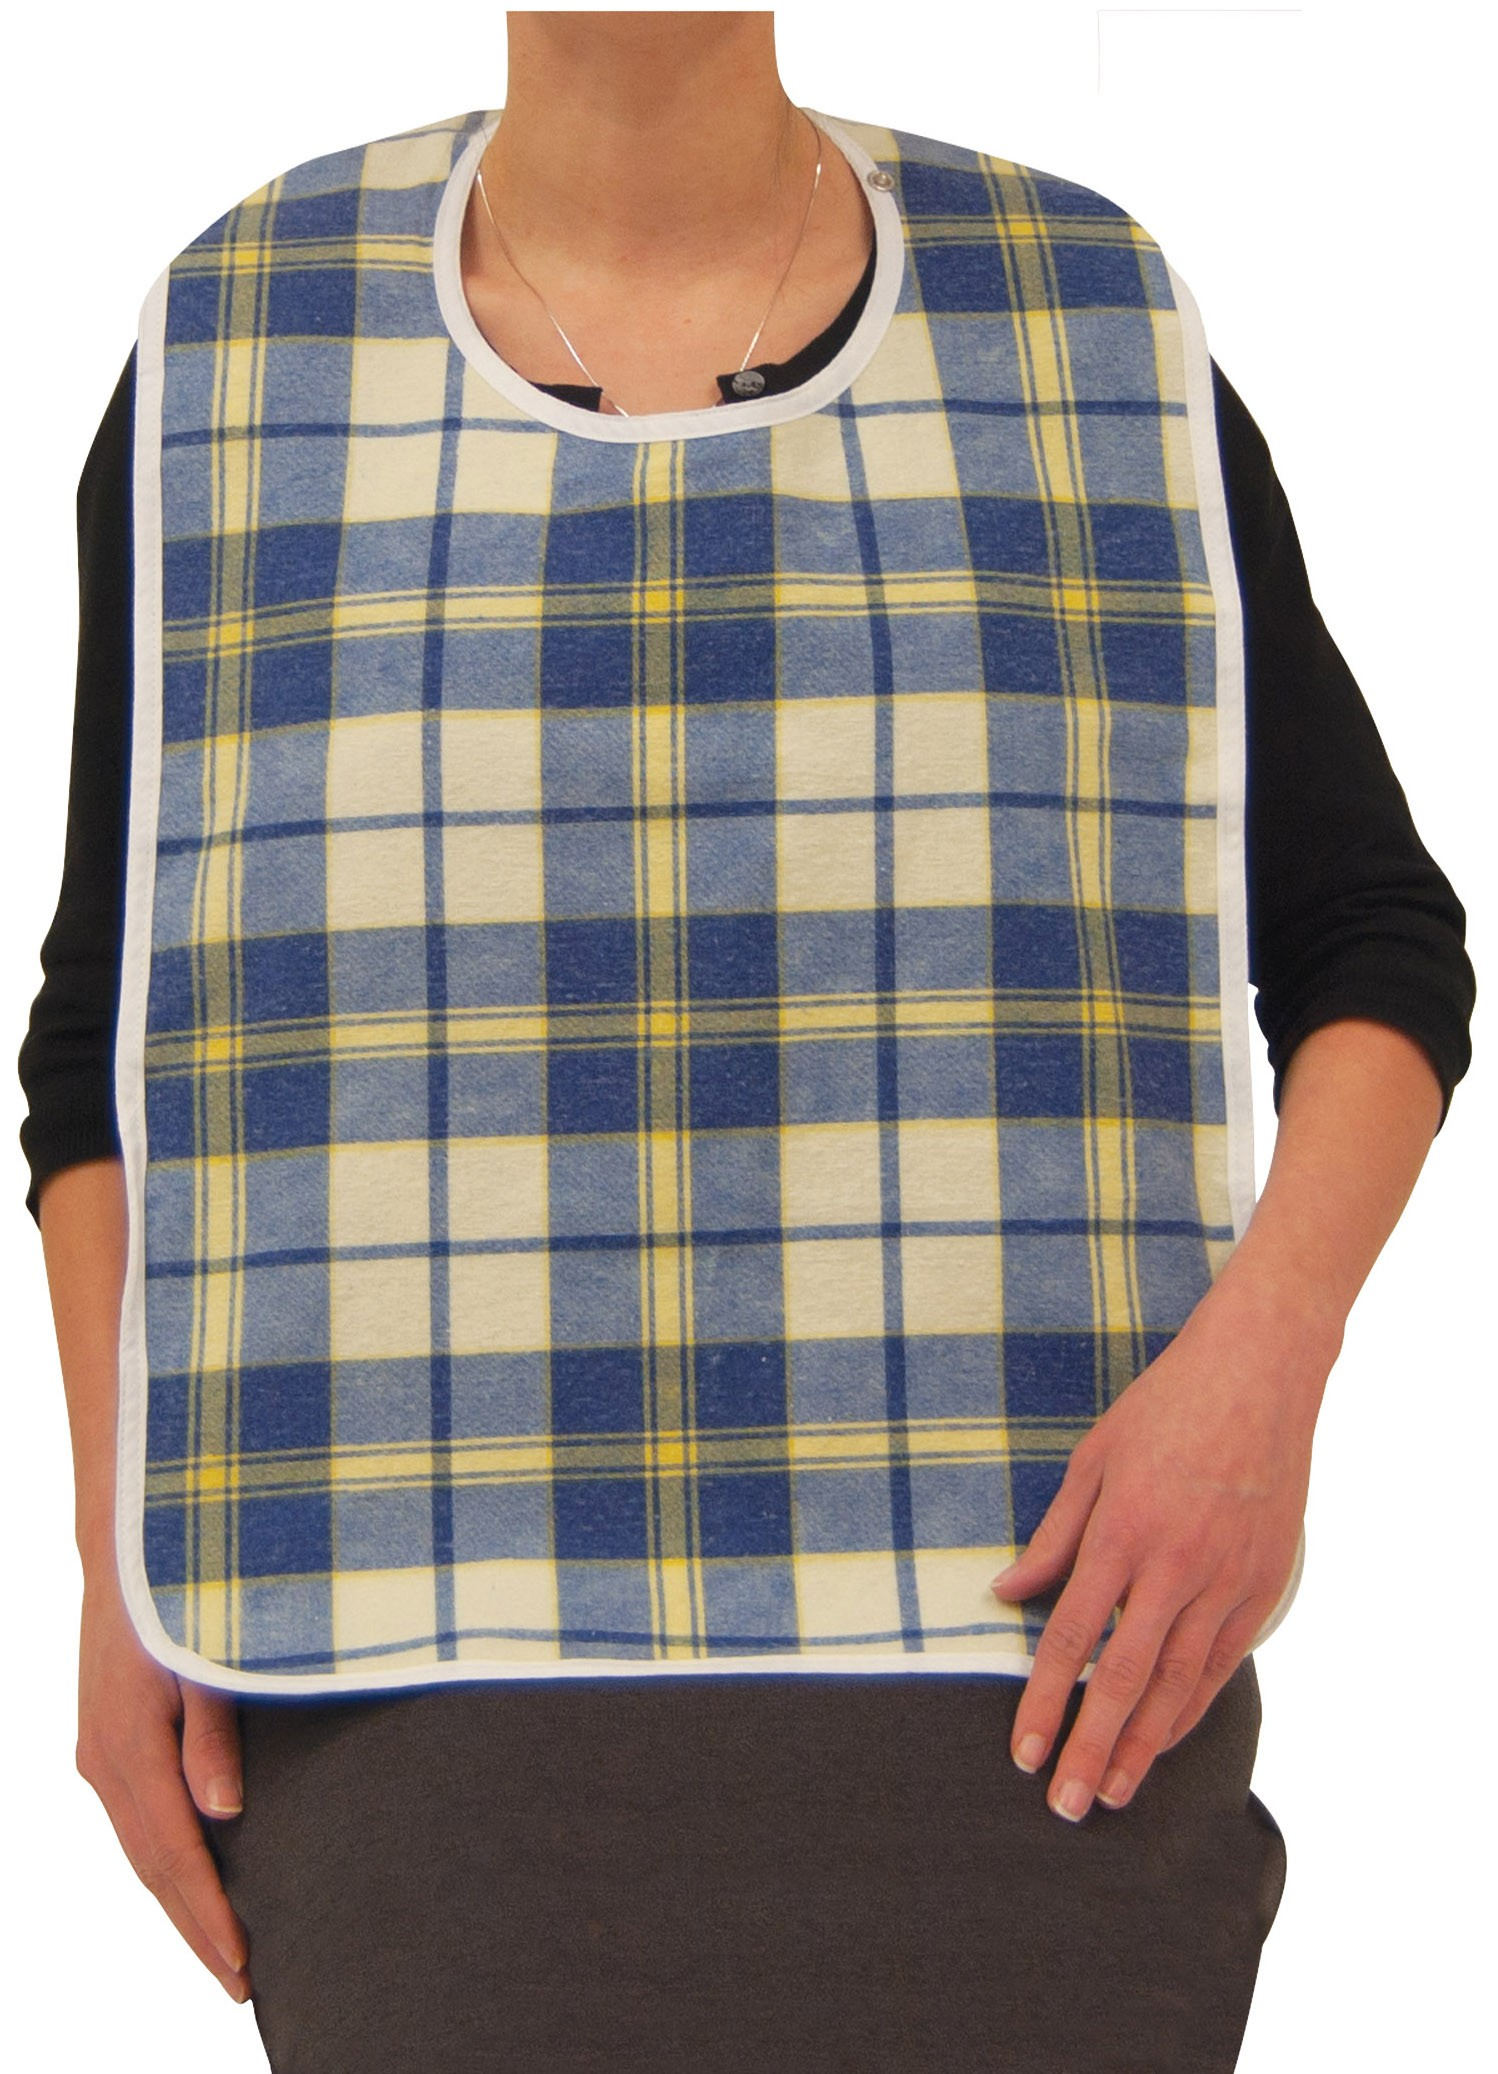 Washable Adult Bib